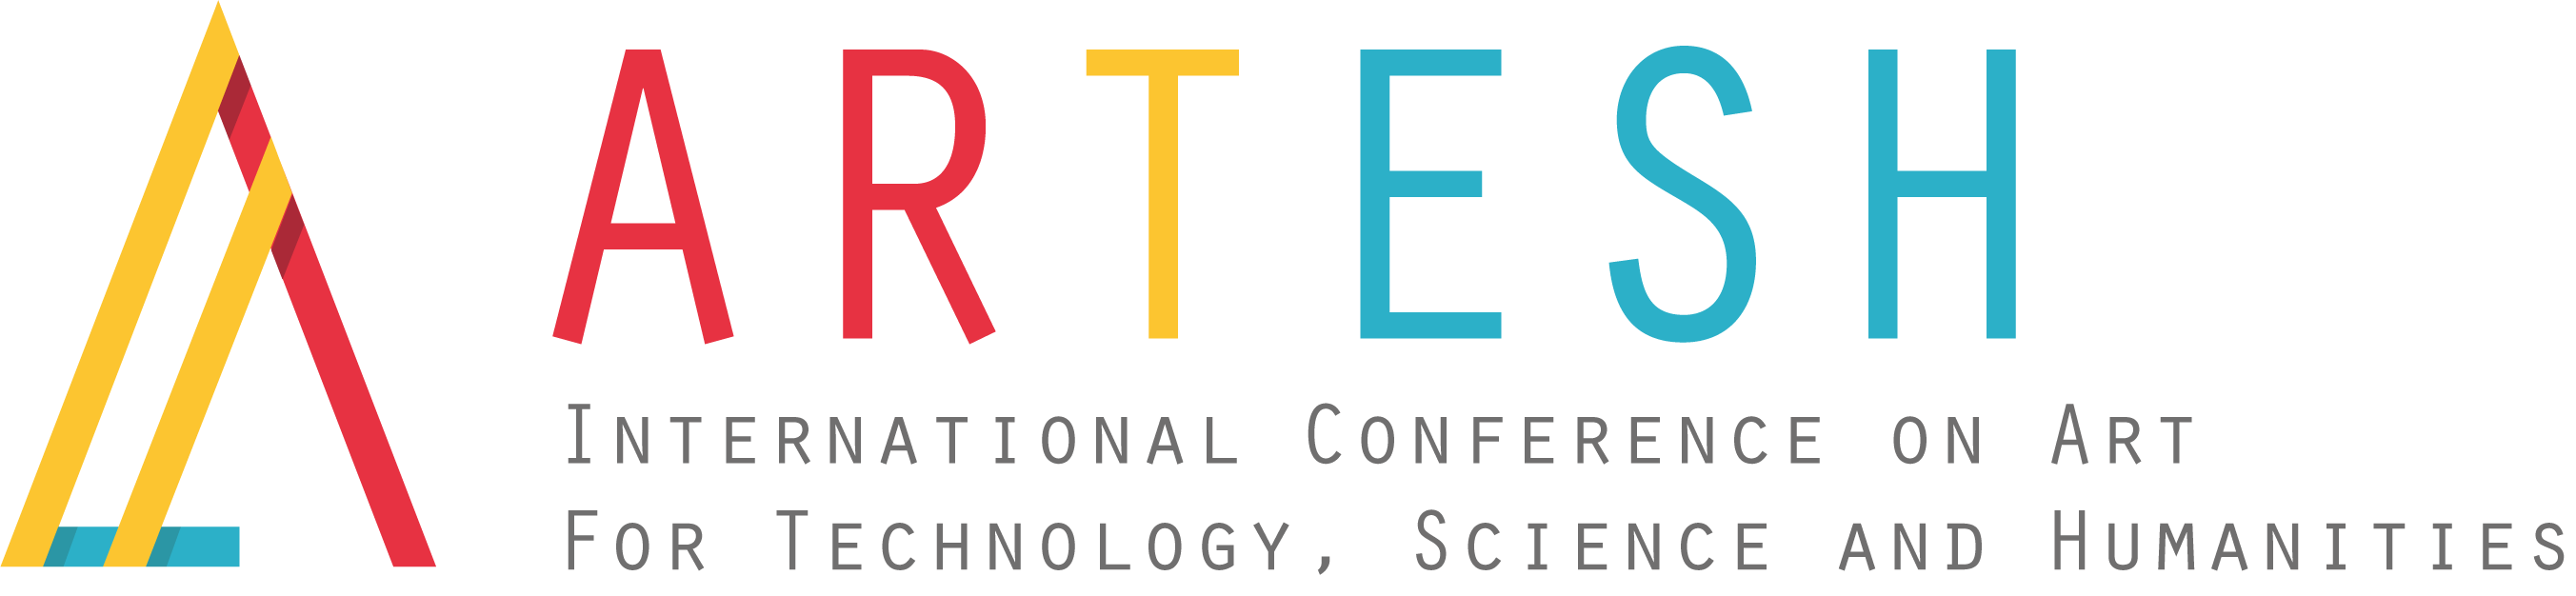 artesh - International Conference on Art, for Technology, Science and Humanities